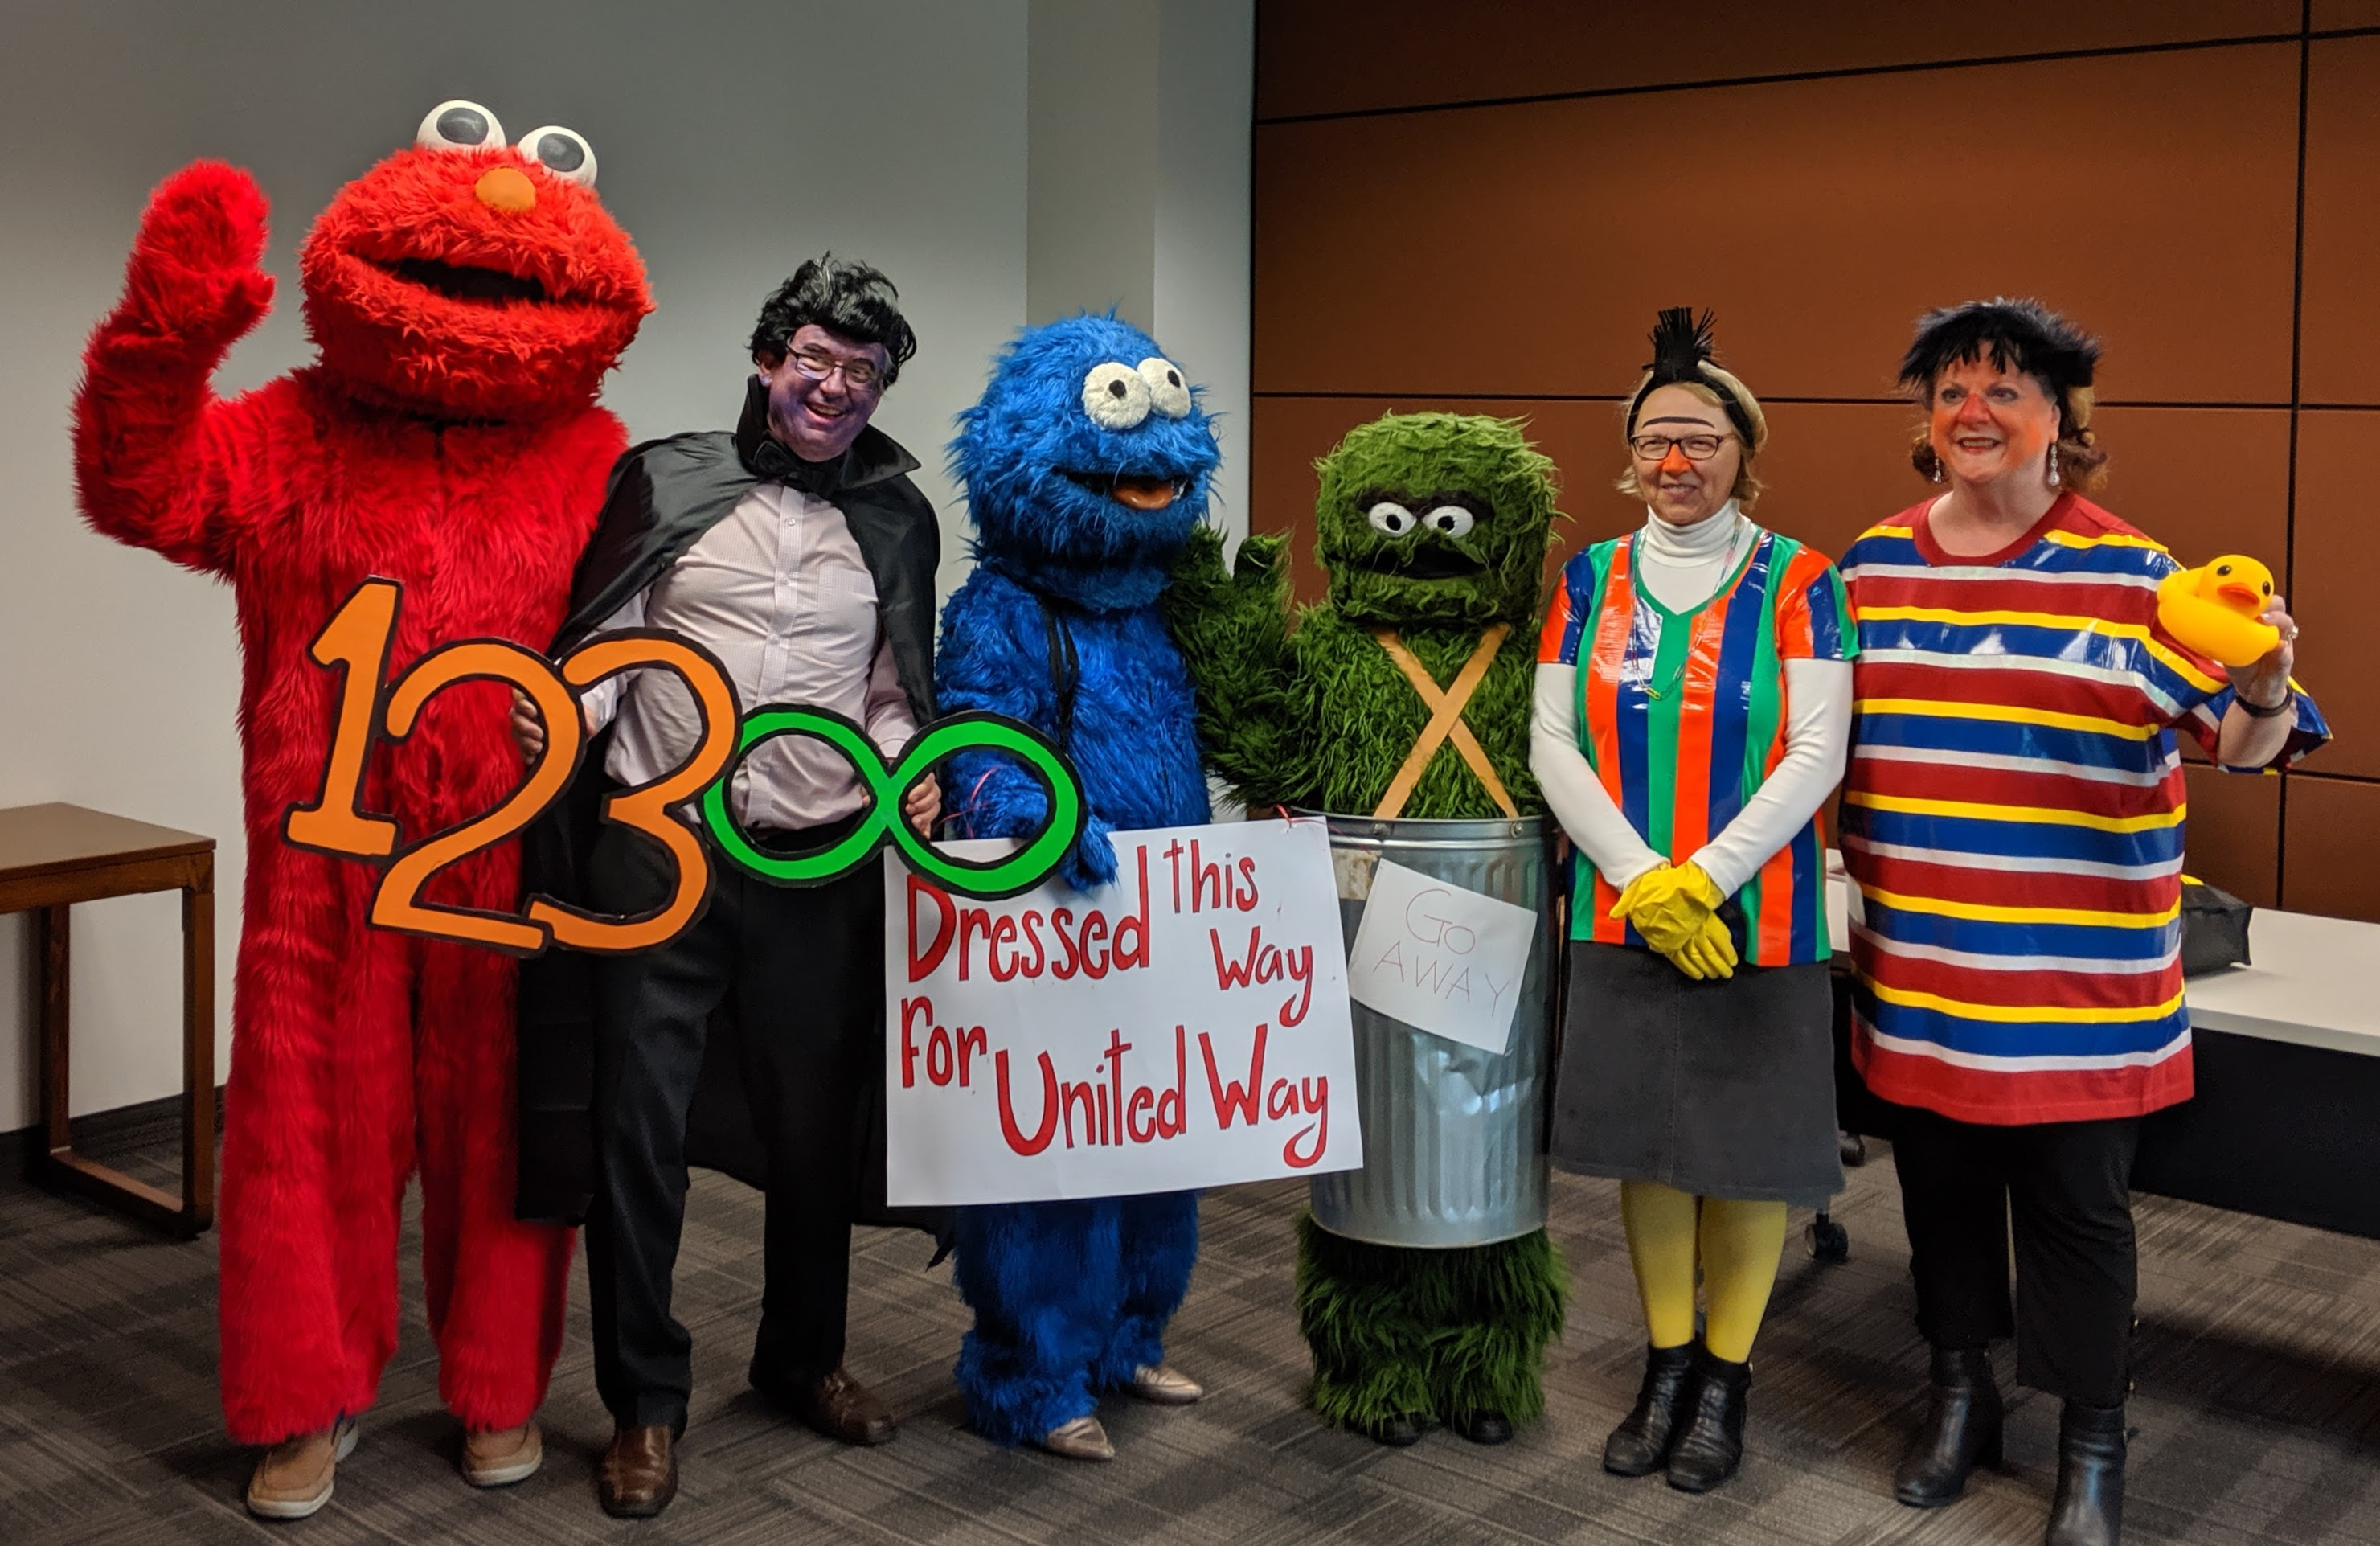 The deans in Sesame Street costumes